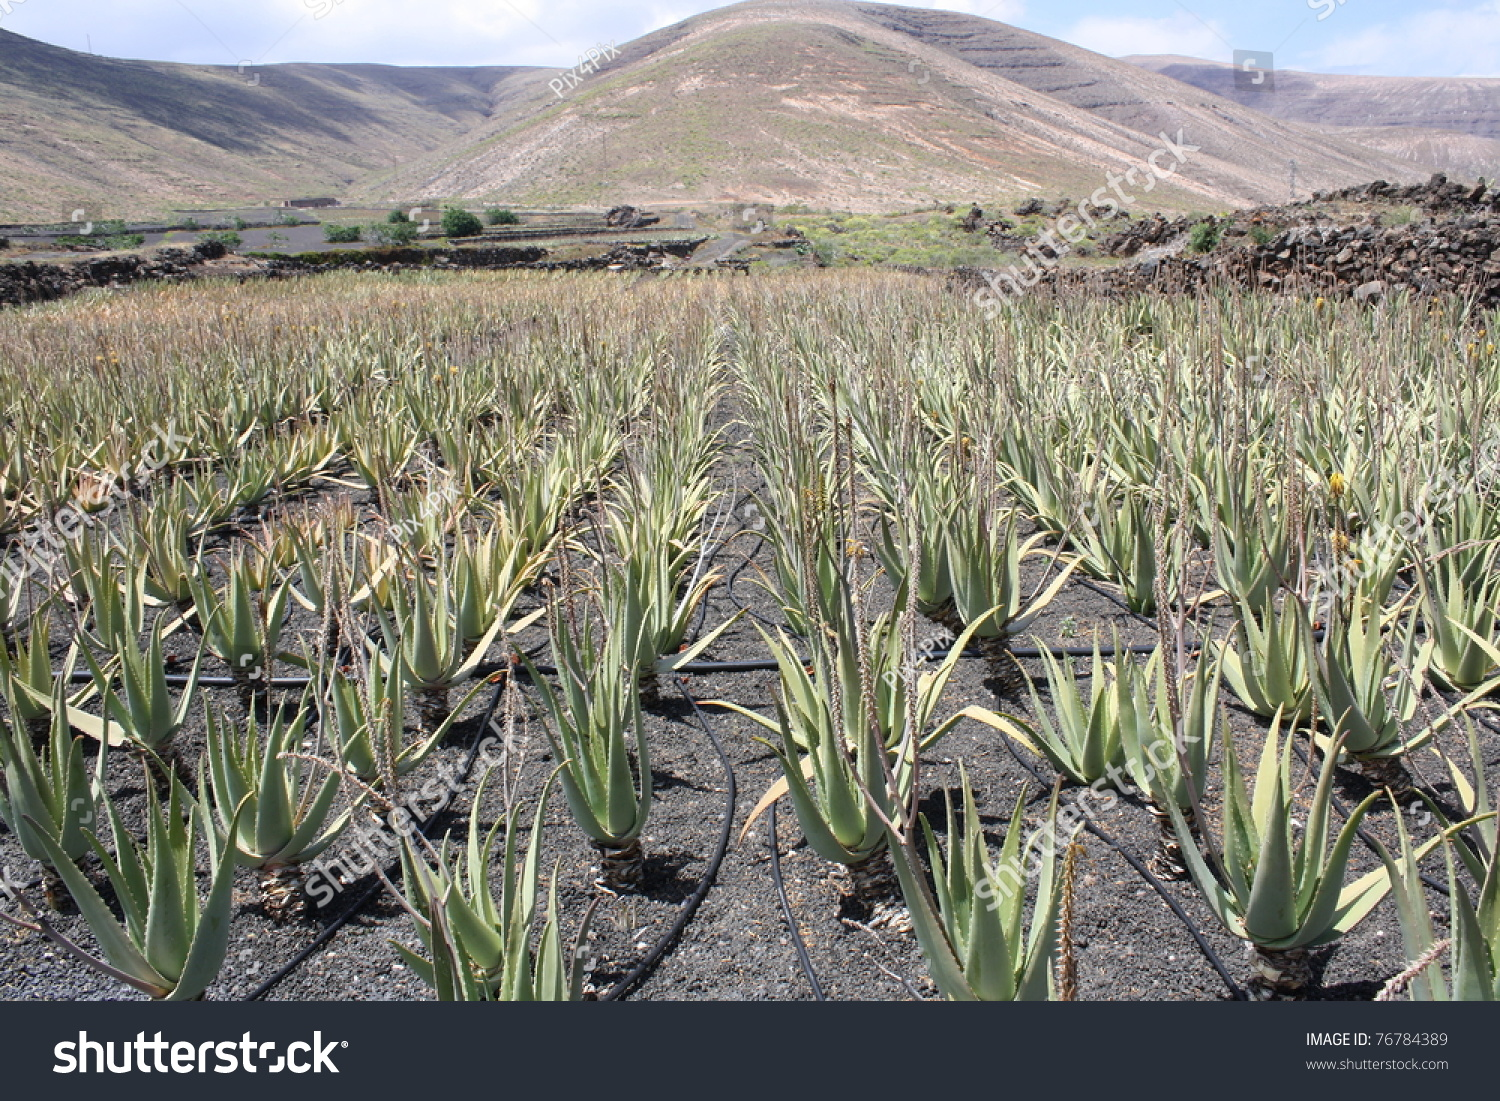 aloe vera plantation outdoors lanzarote island stock photo 76784389 shutterstock. Black Bedroom Furniture Sets. Home Design Ideas